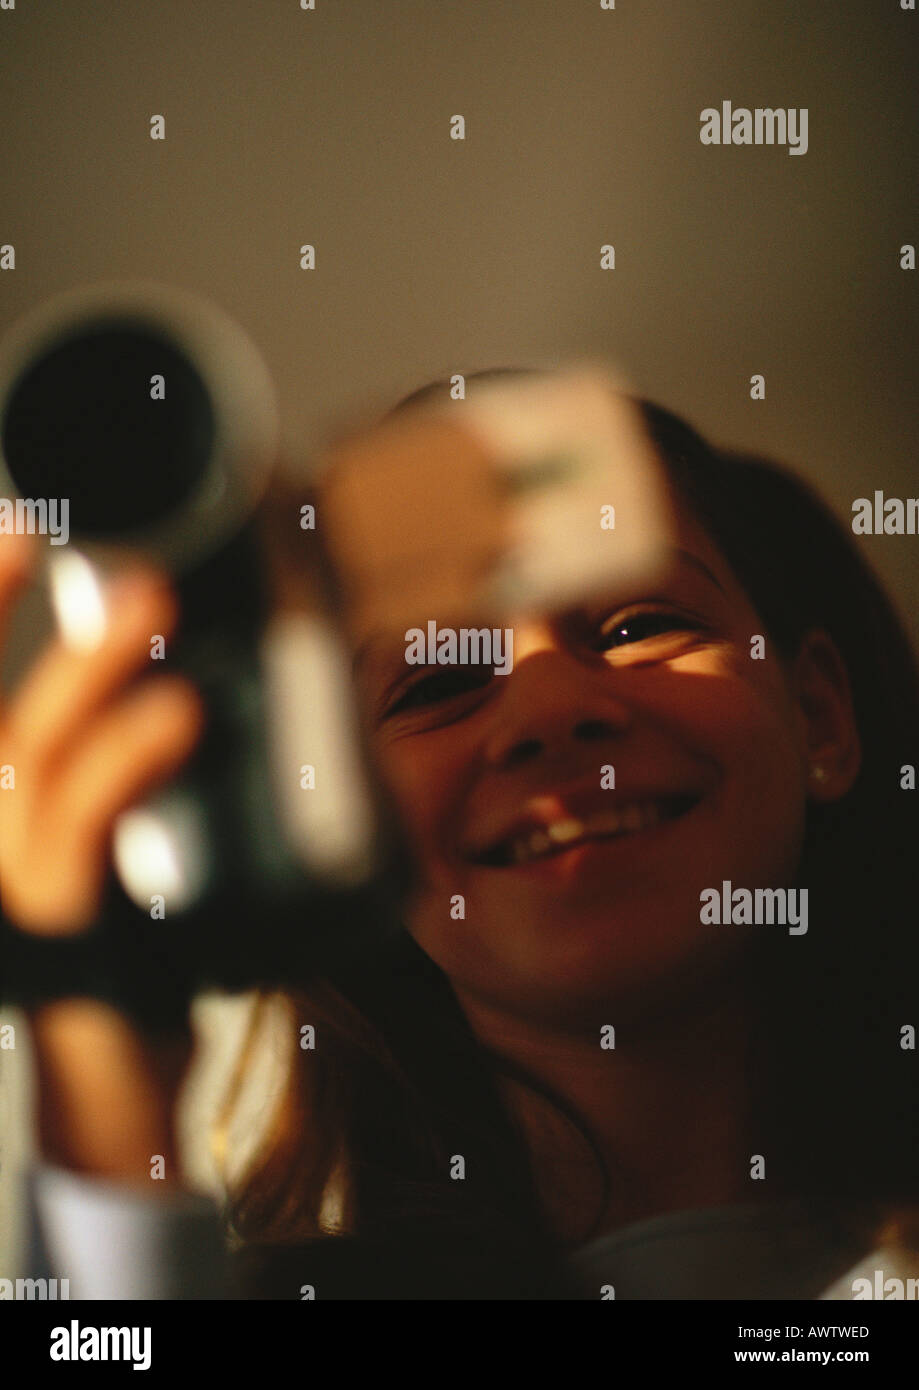 Young girl with camera, smiling, close up - Stock Image